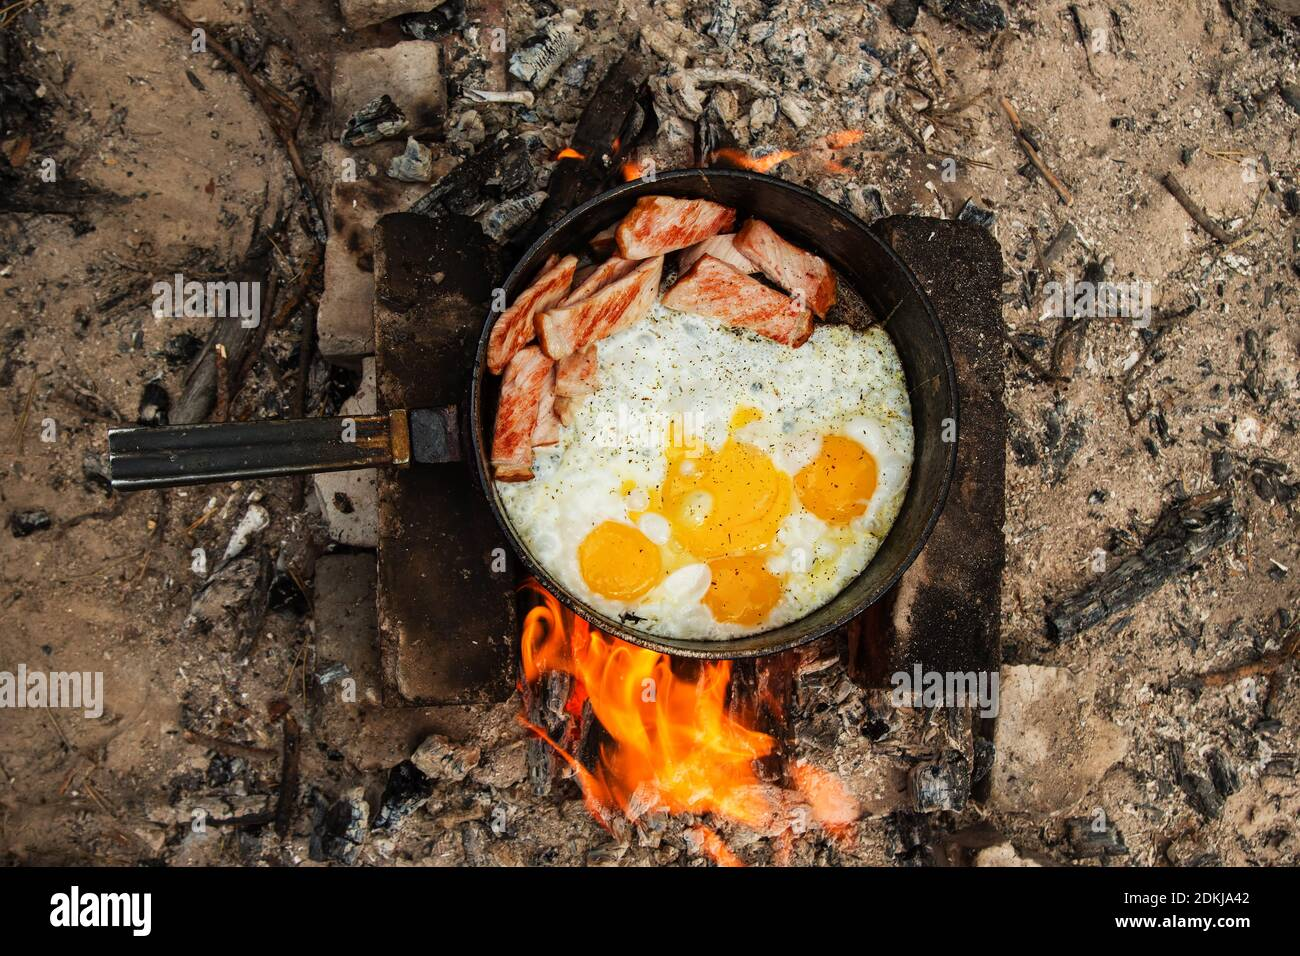 Scrambled eggs with bacon on the cast-iron pan on a bonfire, top view. Stock Photo